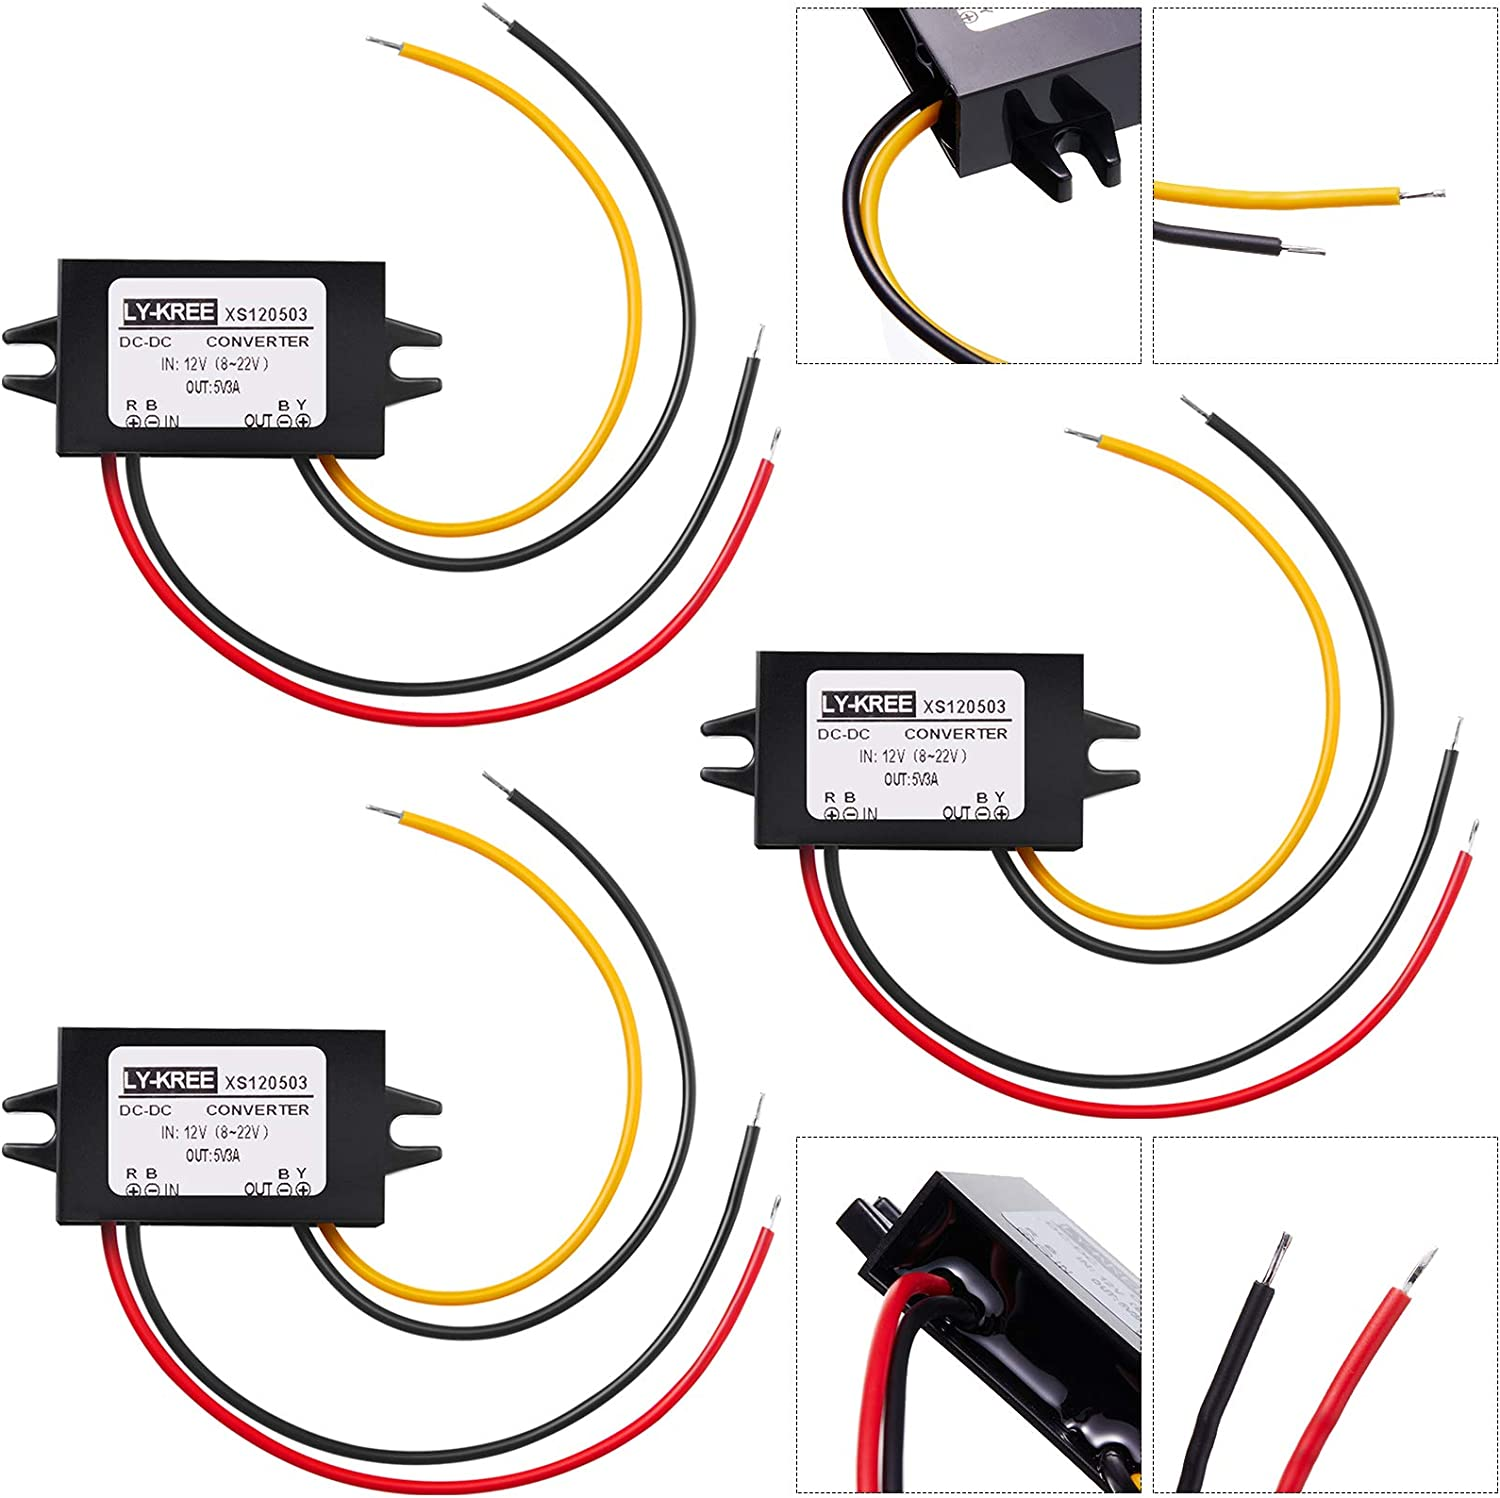 DC Converter 12V to 5V 3A 15W DC Buck Converter Module, DC to DC Reduced Voltage Regulator Car Power Converter Output Power Adapter, Wire Interface (3 Pieces)